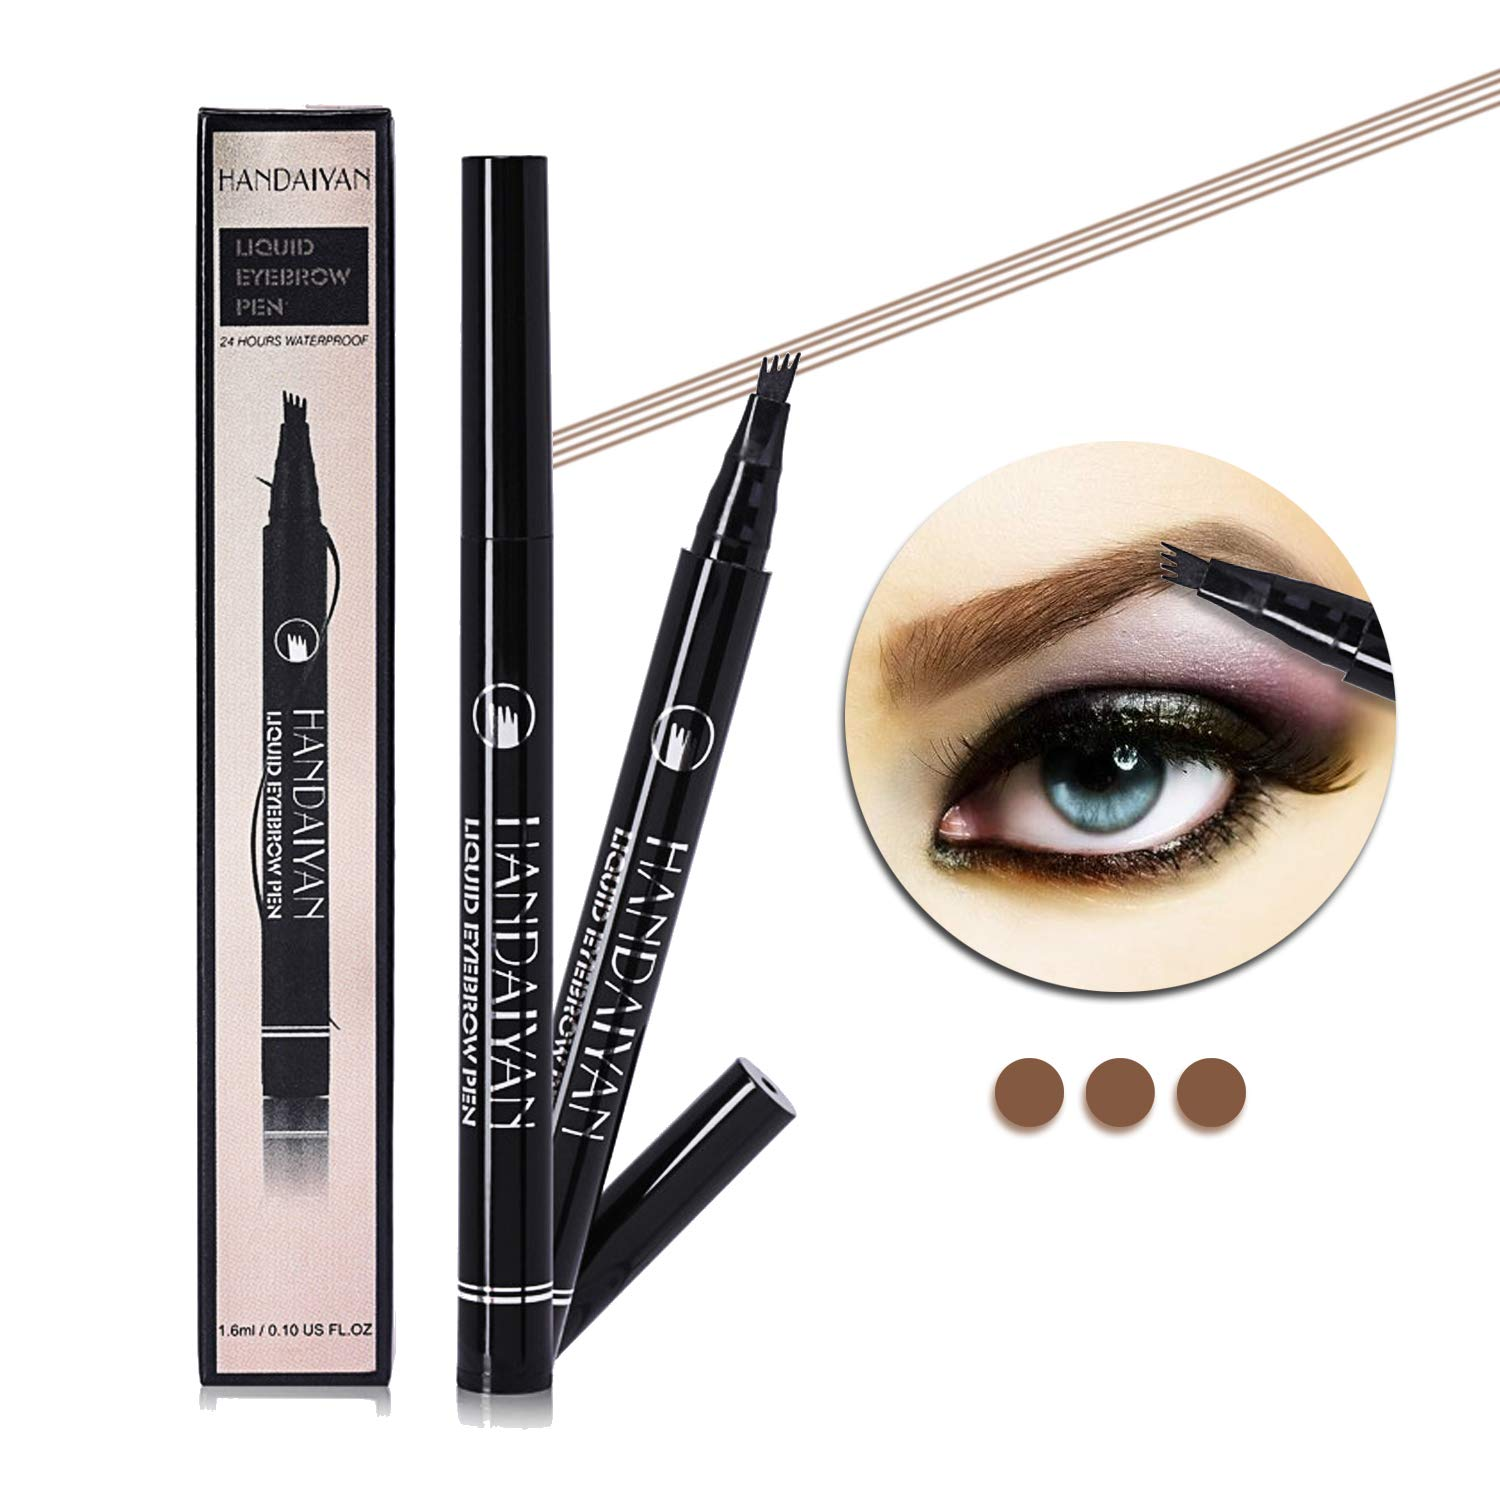 Eyebrow tattoo pen with a micro fork tips long lasting waterproof brow pencil for